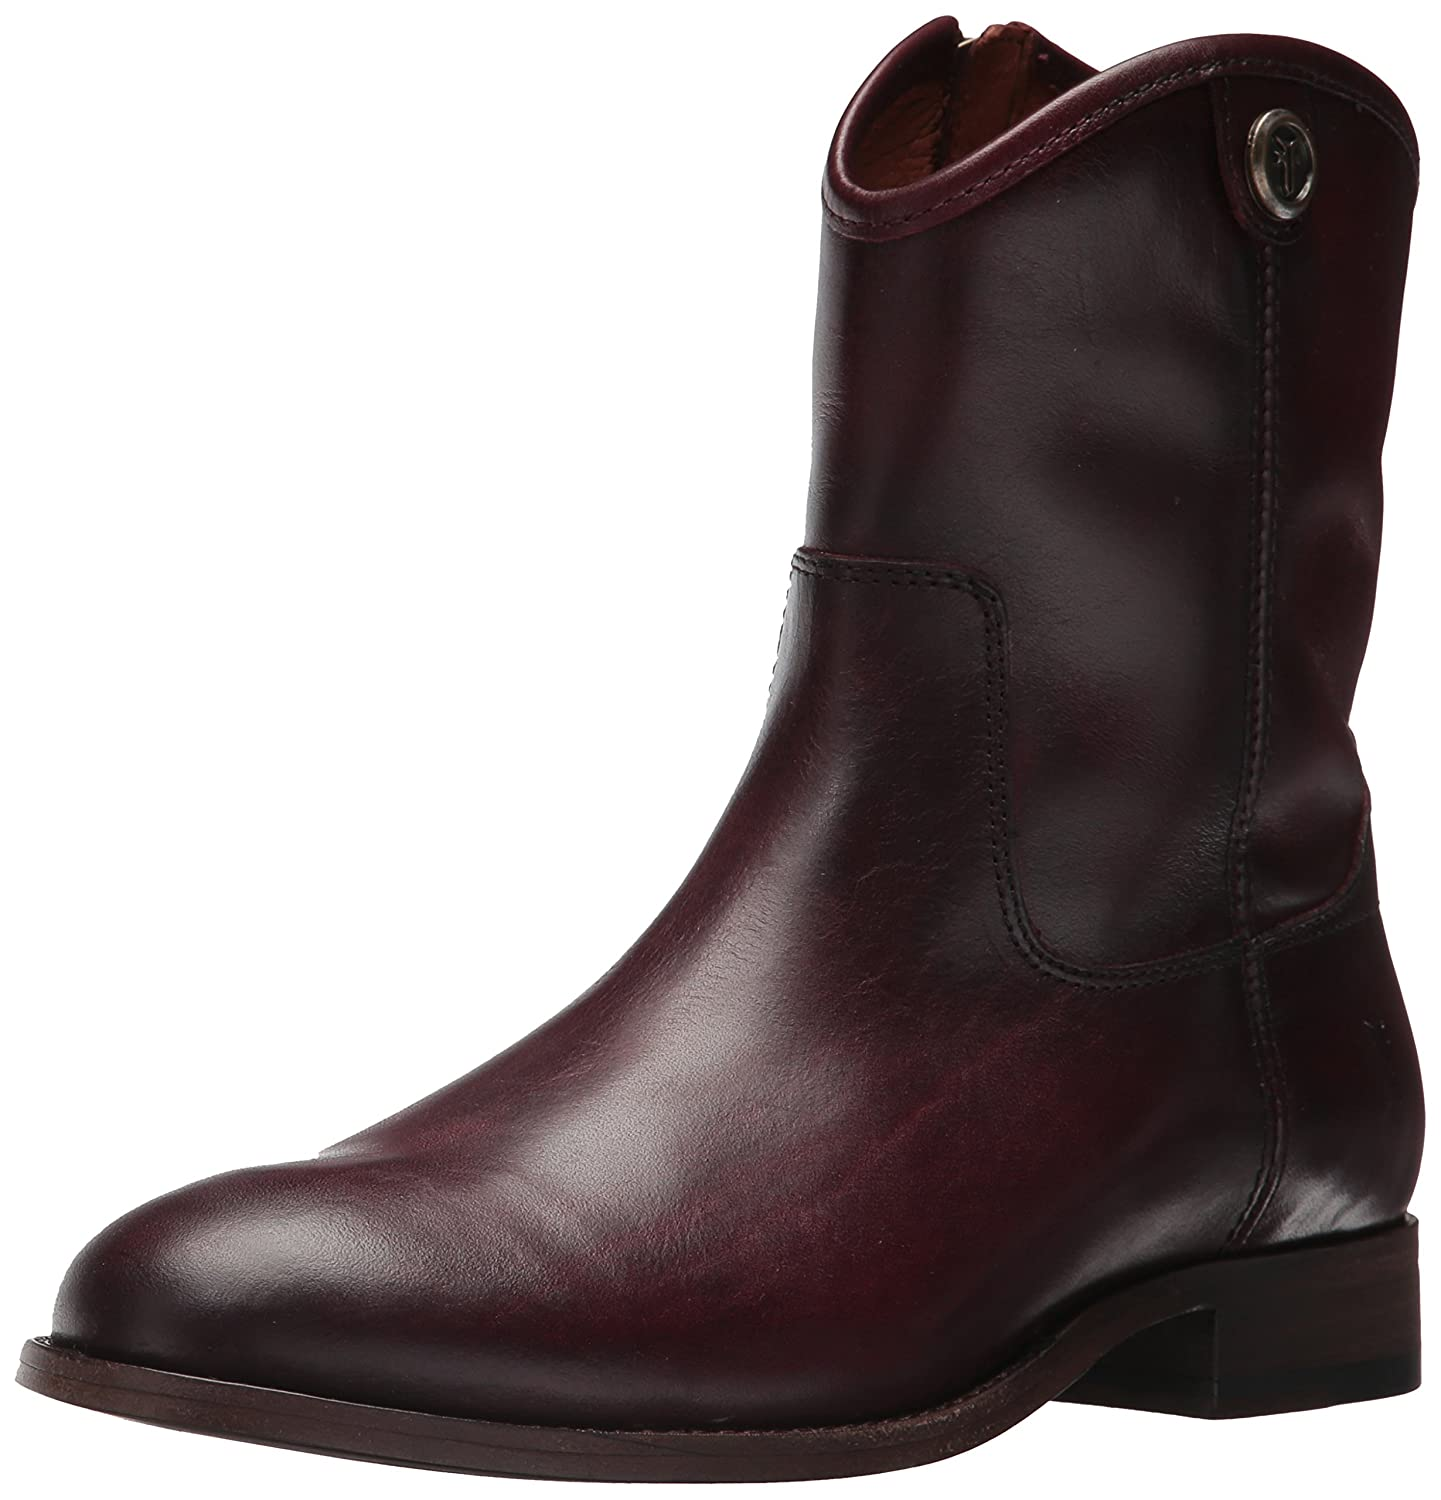 FRYE Women's Melissa Button Short 2 Boot B06X14LKN9 7 B(M) US|Wine